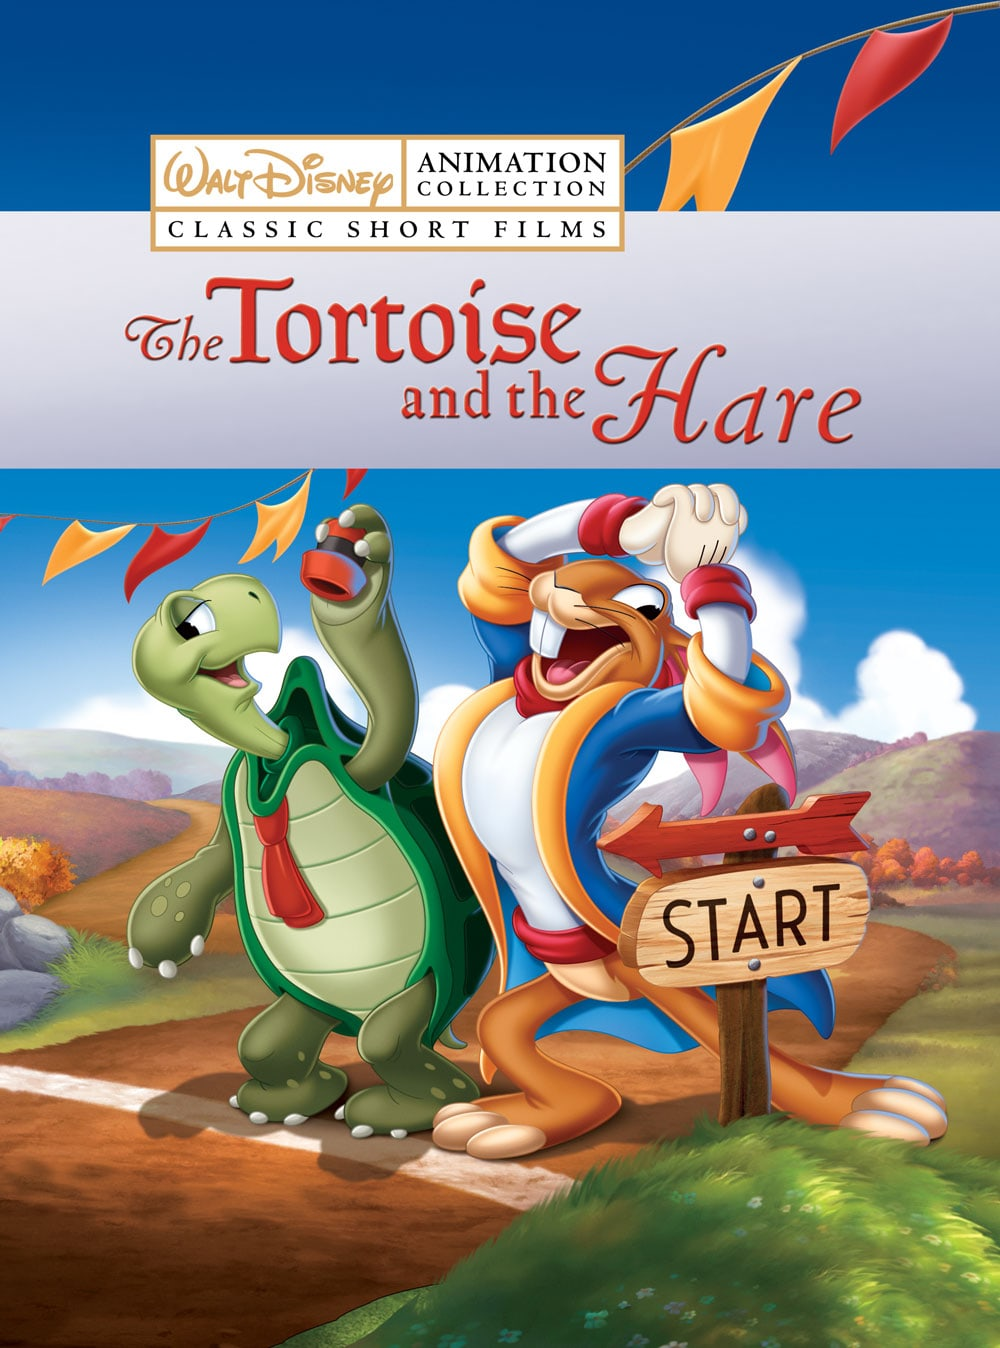 Disney Animation Collection Volume 4 The Tortoise And The Hare